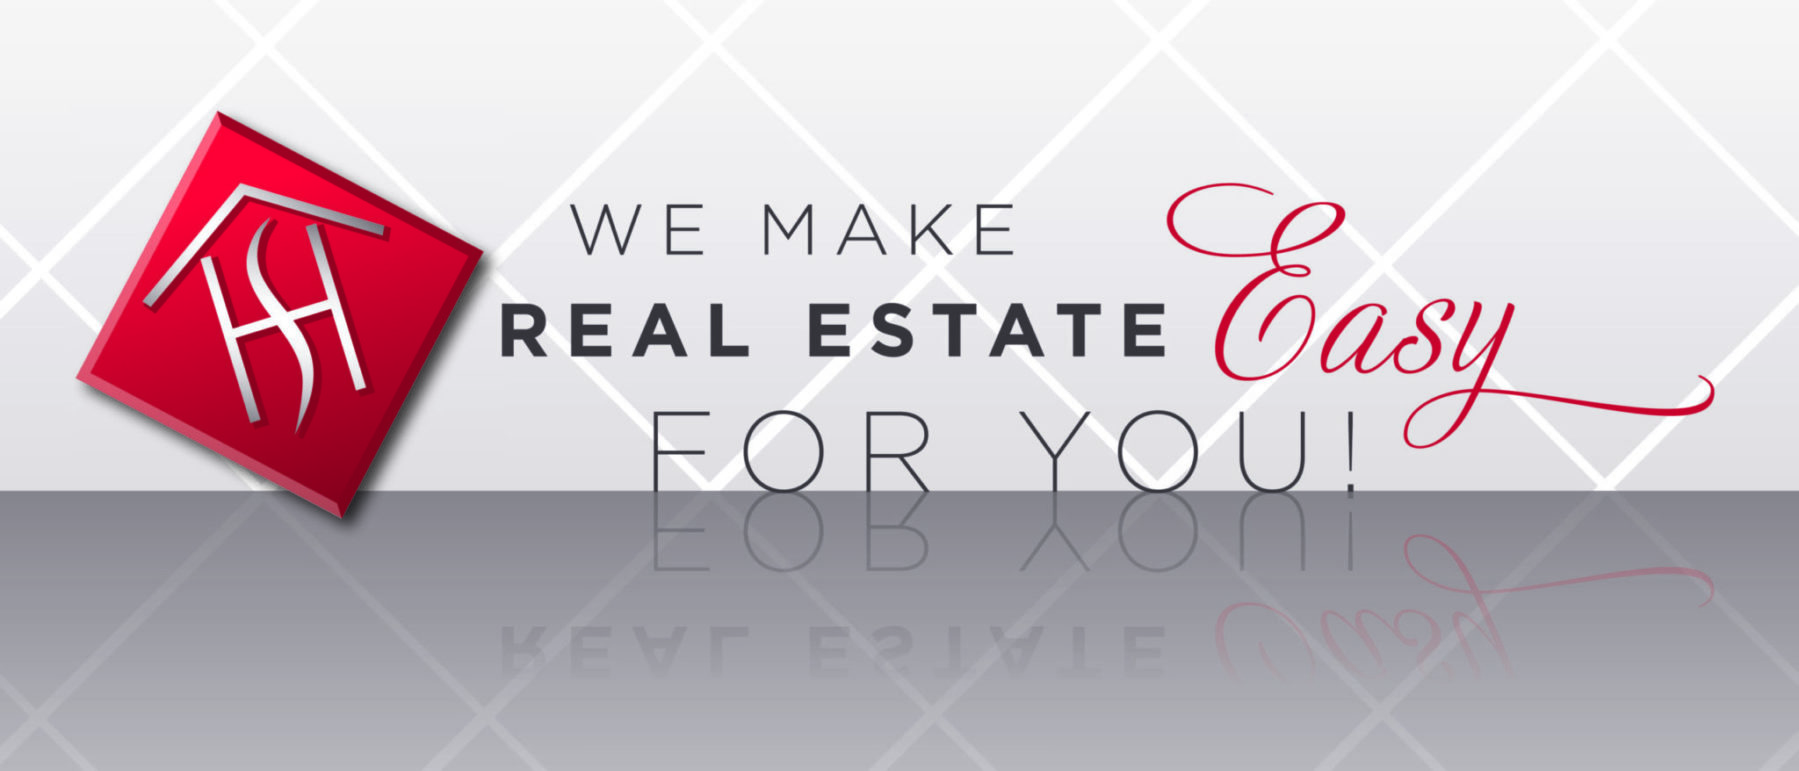 HomeSmart Encore Real Estate in Las Vegas Nevada Logo we make real estate easy for you